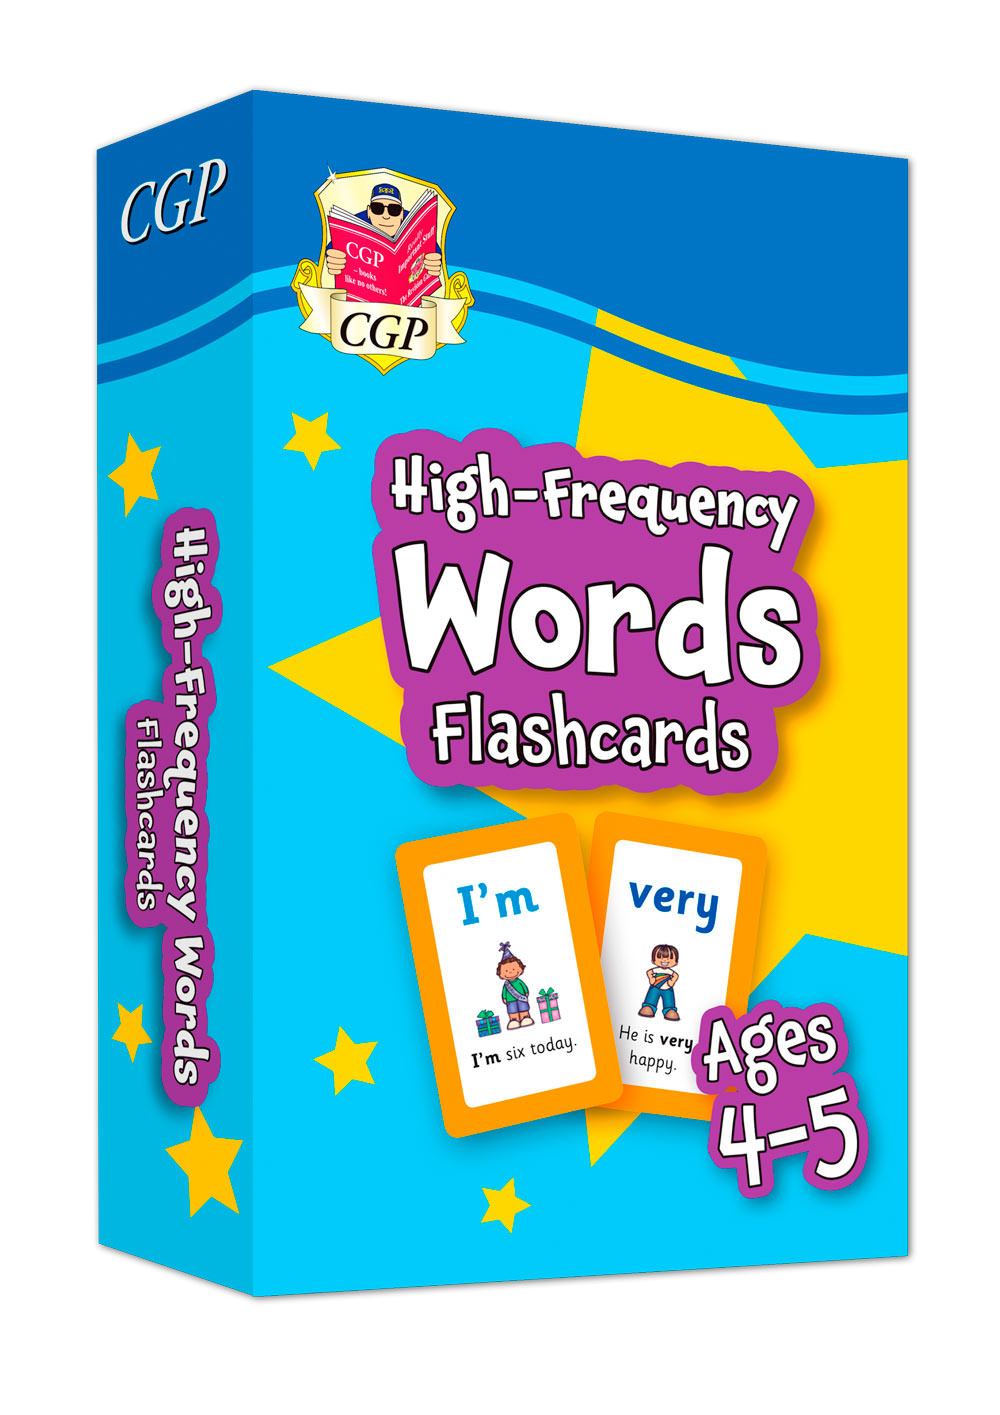 EPFWRF01 - New High-Frequency Words Home Learning Flashcards for Ages 4-5